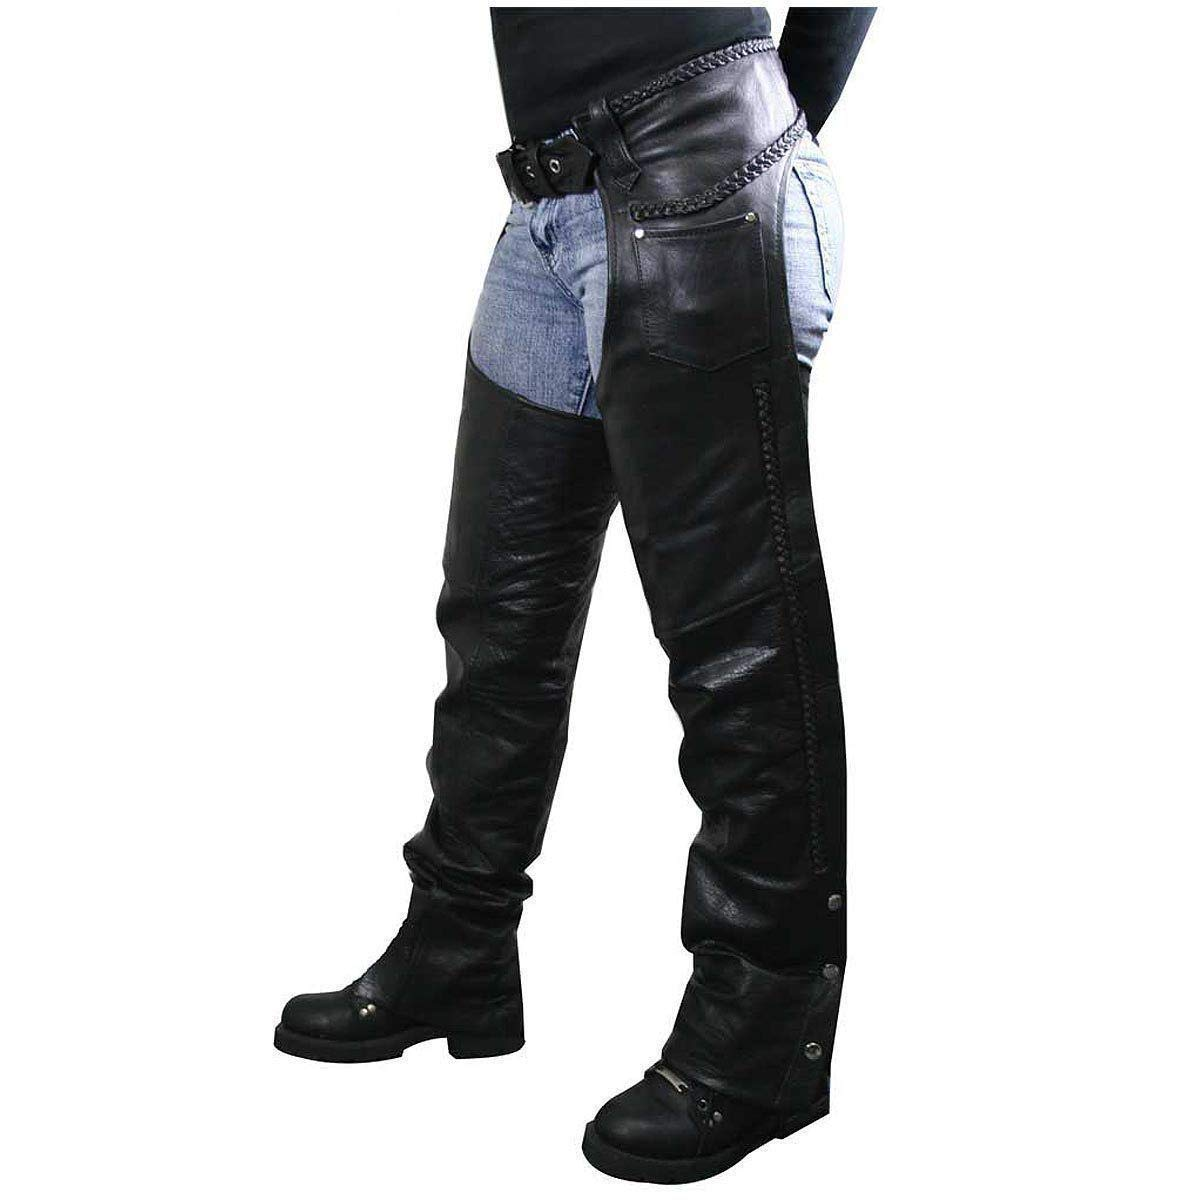 Xelement 7701 Women's Black Braided Leather Chaps - 4